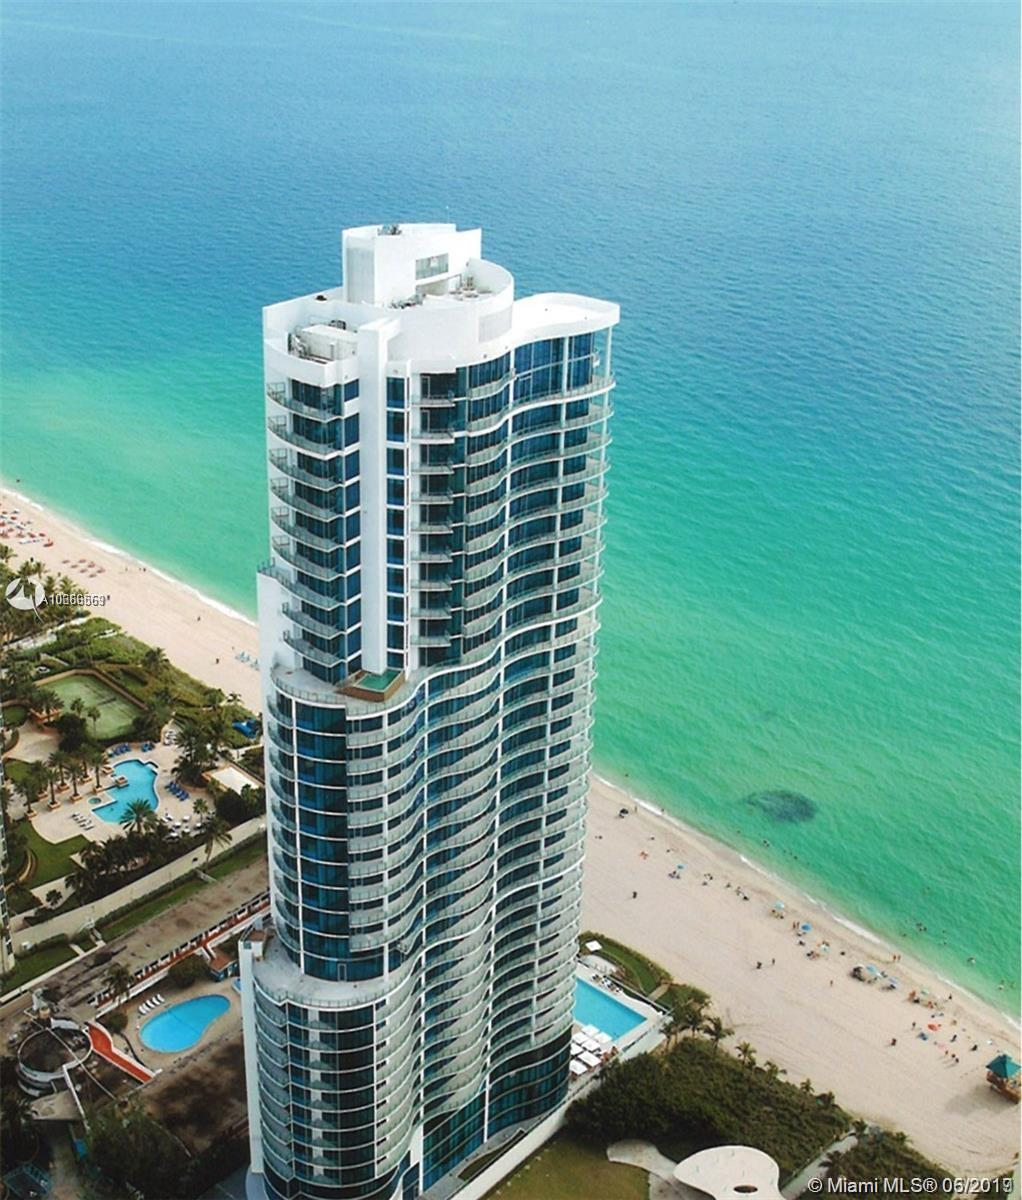 17475 Collins Ave, Unit #3101 Luxury Real Estate